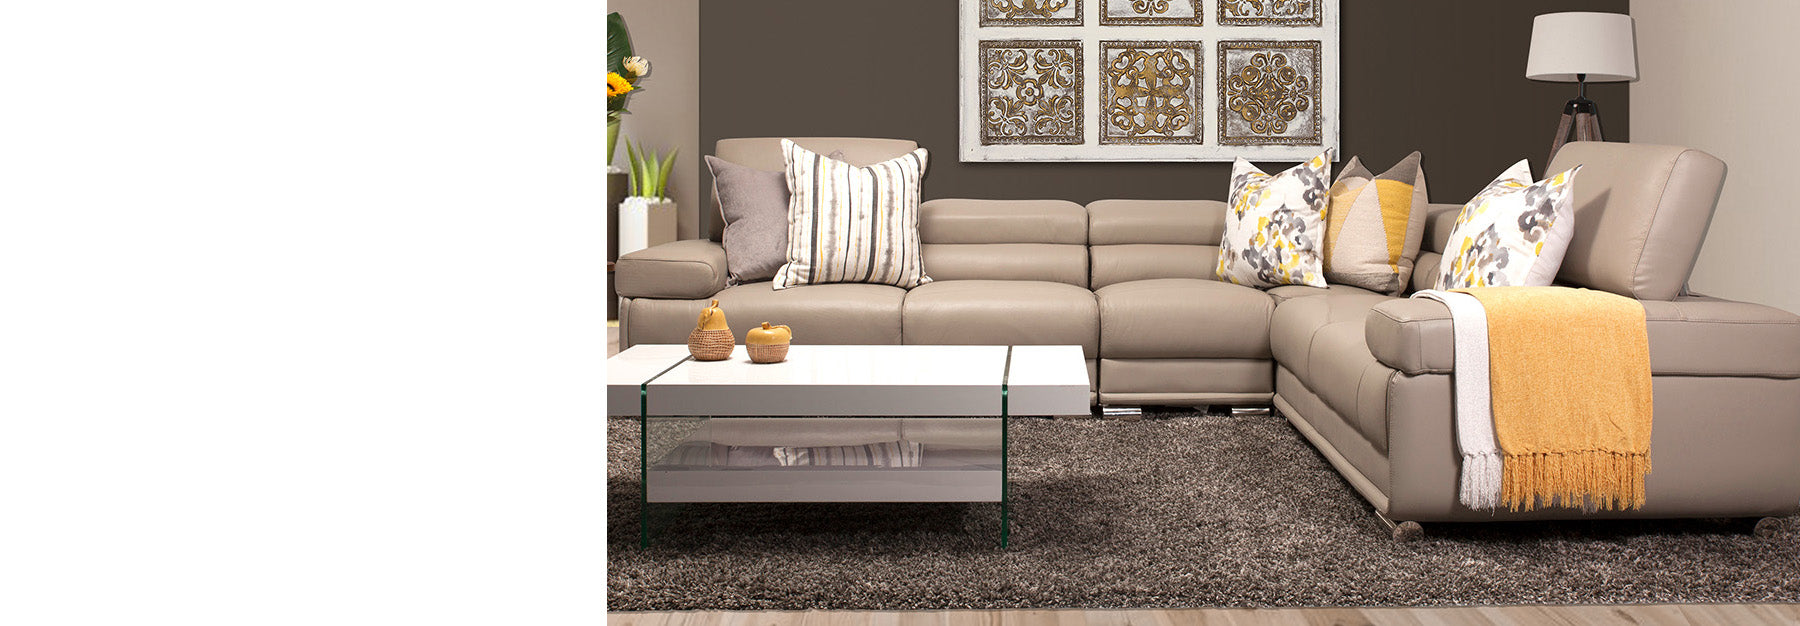 Leather furniture buy fabric sofa dining table leather for Couches and sofas in pretoria